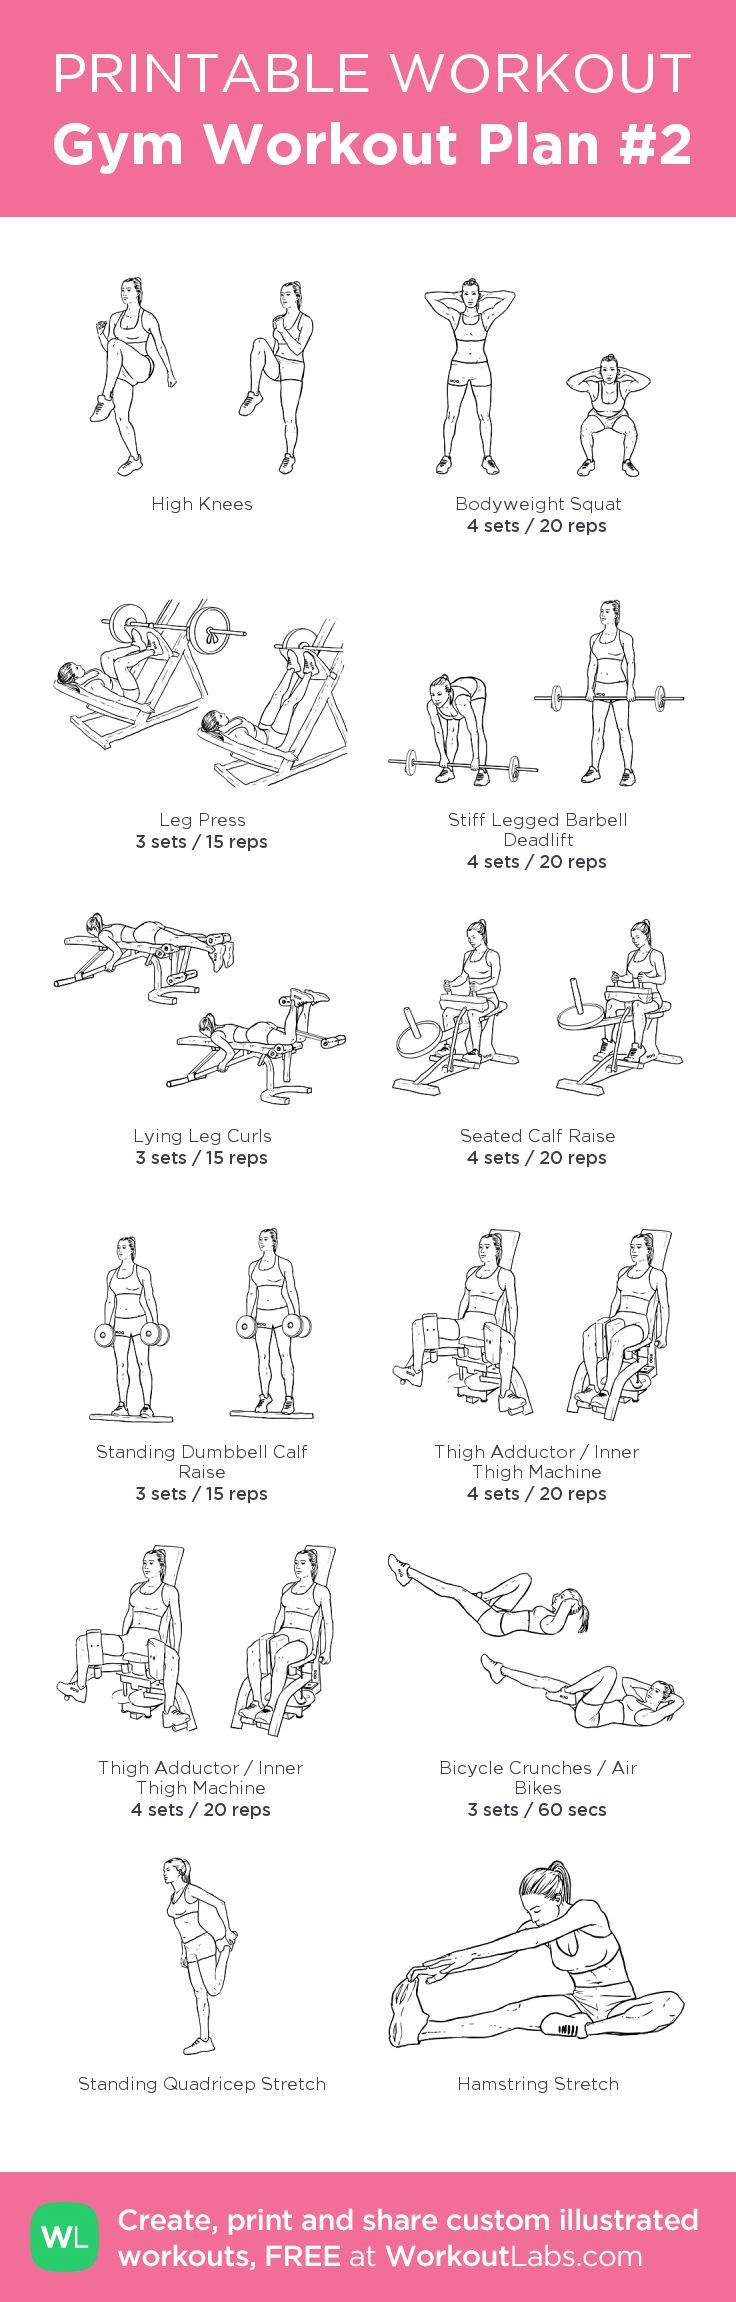 Gym Workout Plan #2: Legs. Instead of high knees do 5 warm up on treadmill, and at the end replace the abs with 10 HIIT on stationary bike followed by 5 low intensity for cool down before stretching. my custom printable workout by @WorkoutLabs #workoutlabs #customworkout - Fitness For Life